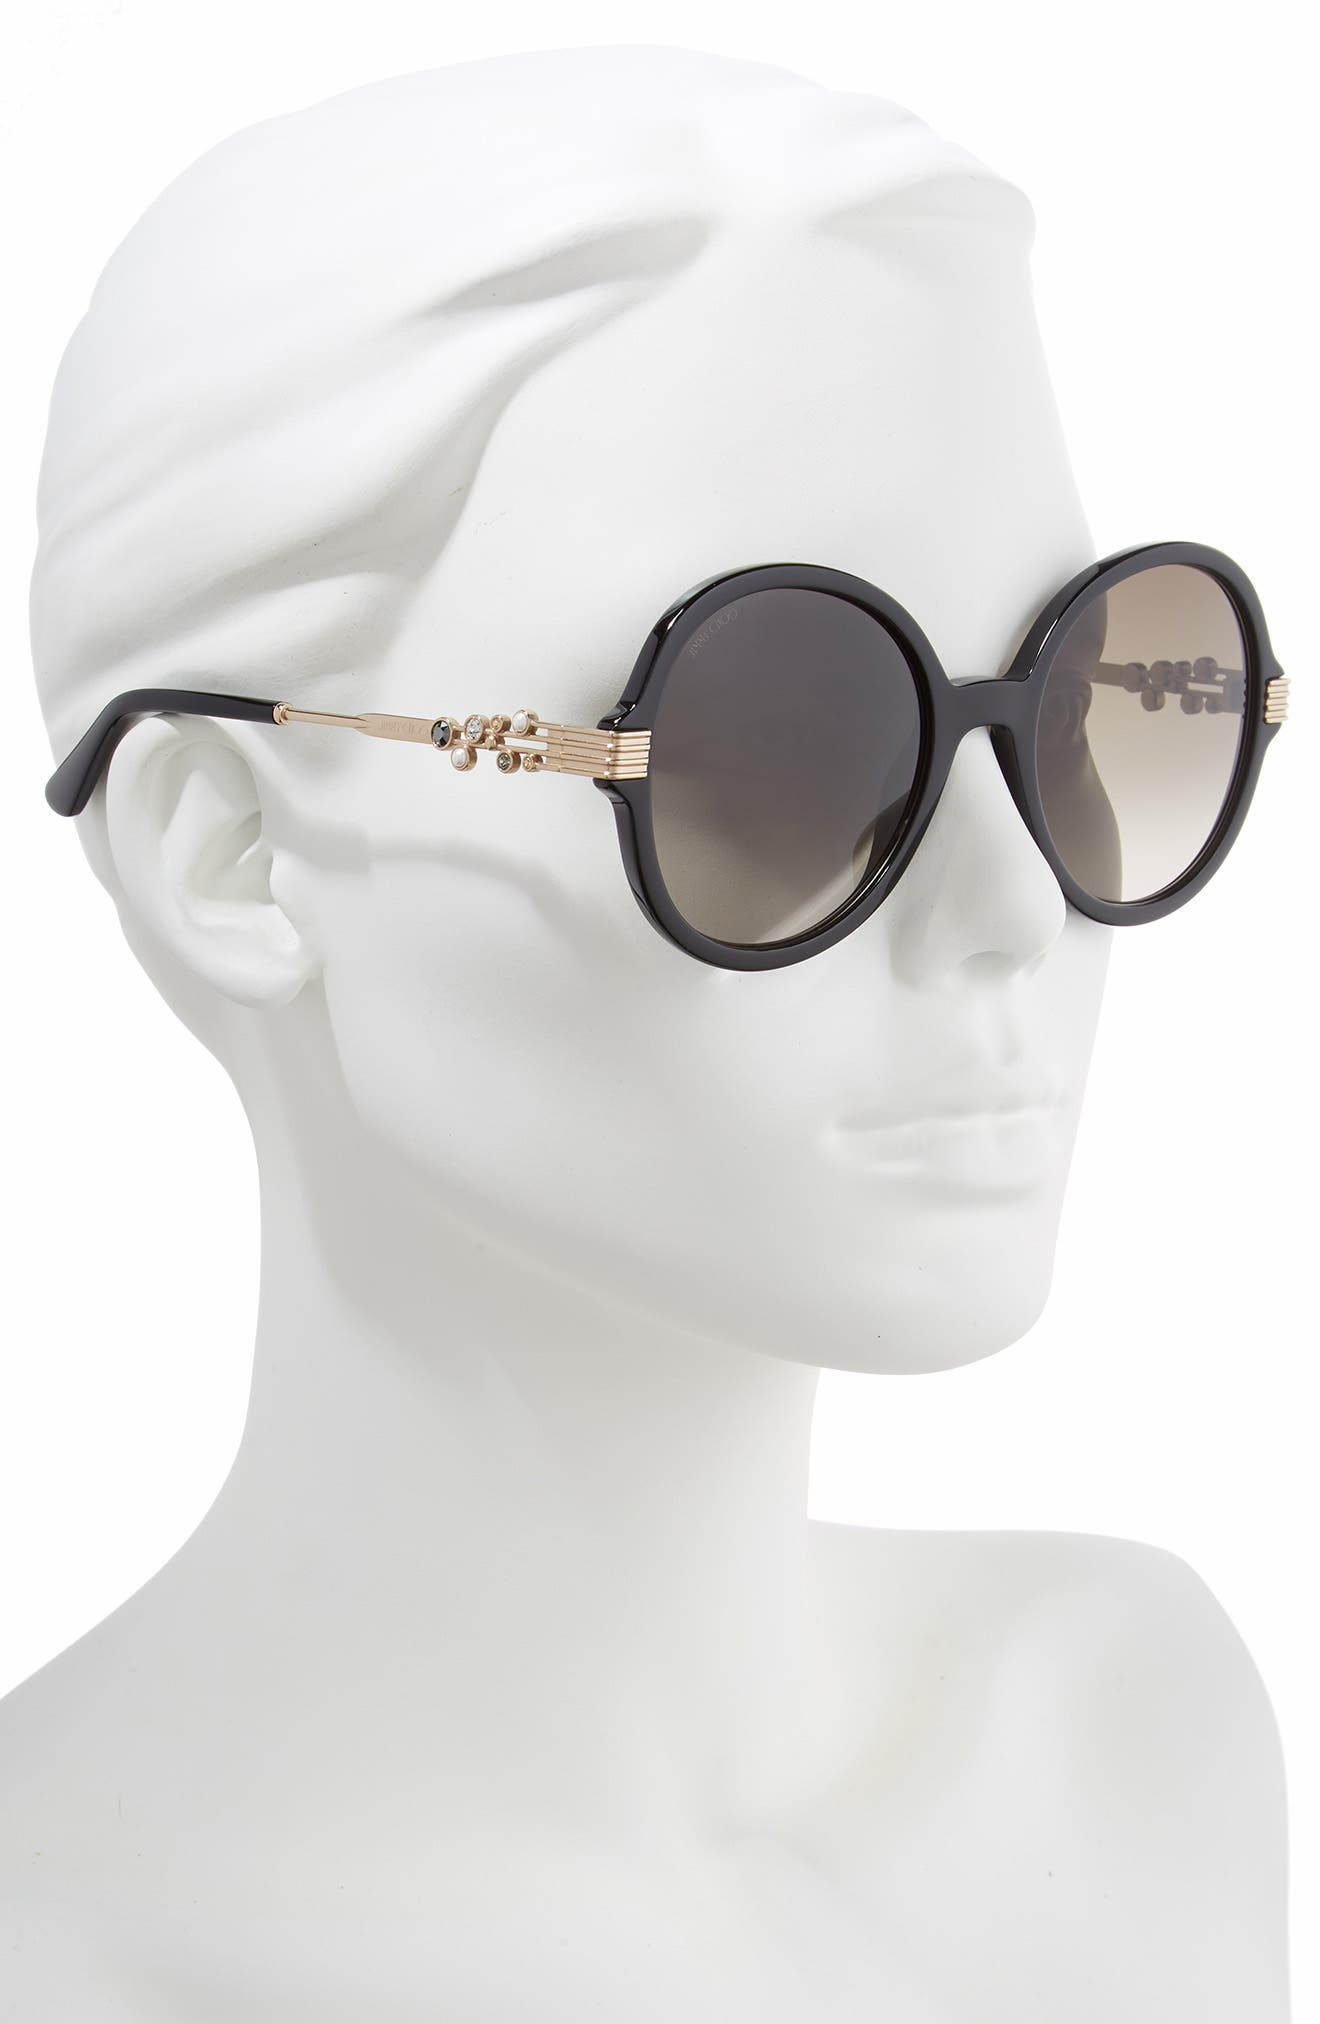 JIMMY CHOO,                             Adria 55mm Round Sunglasses,                             Alternate thumbnail 2, color,                             BLACK